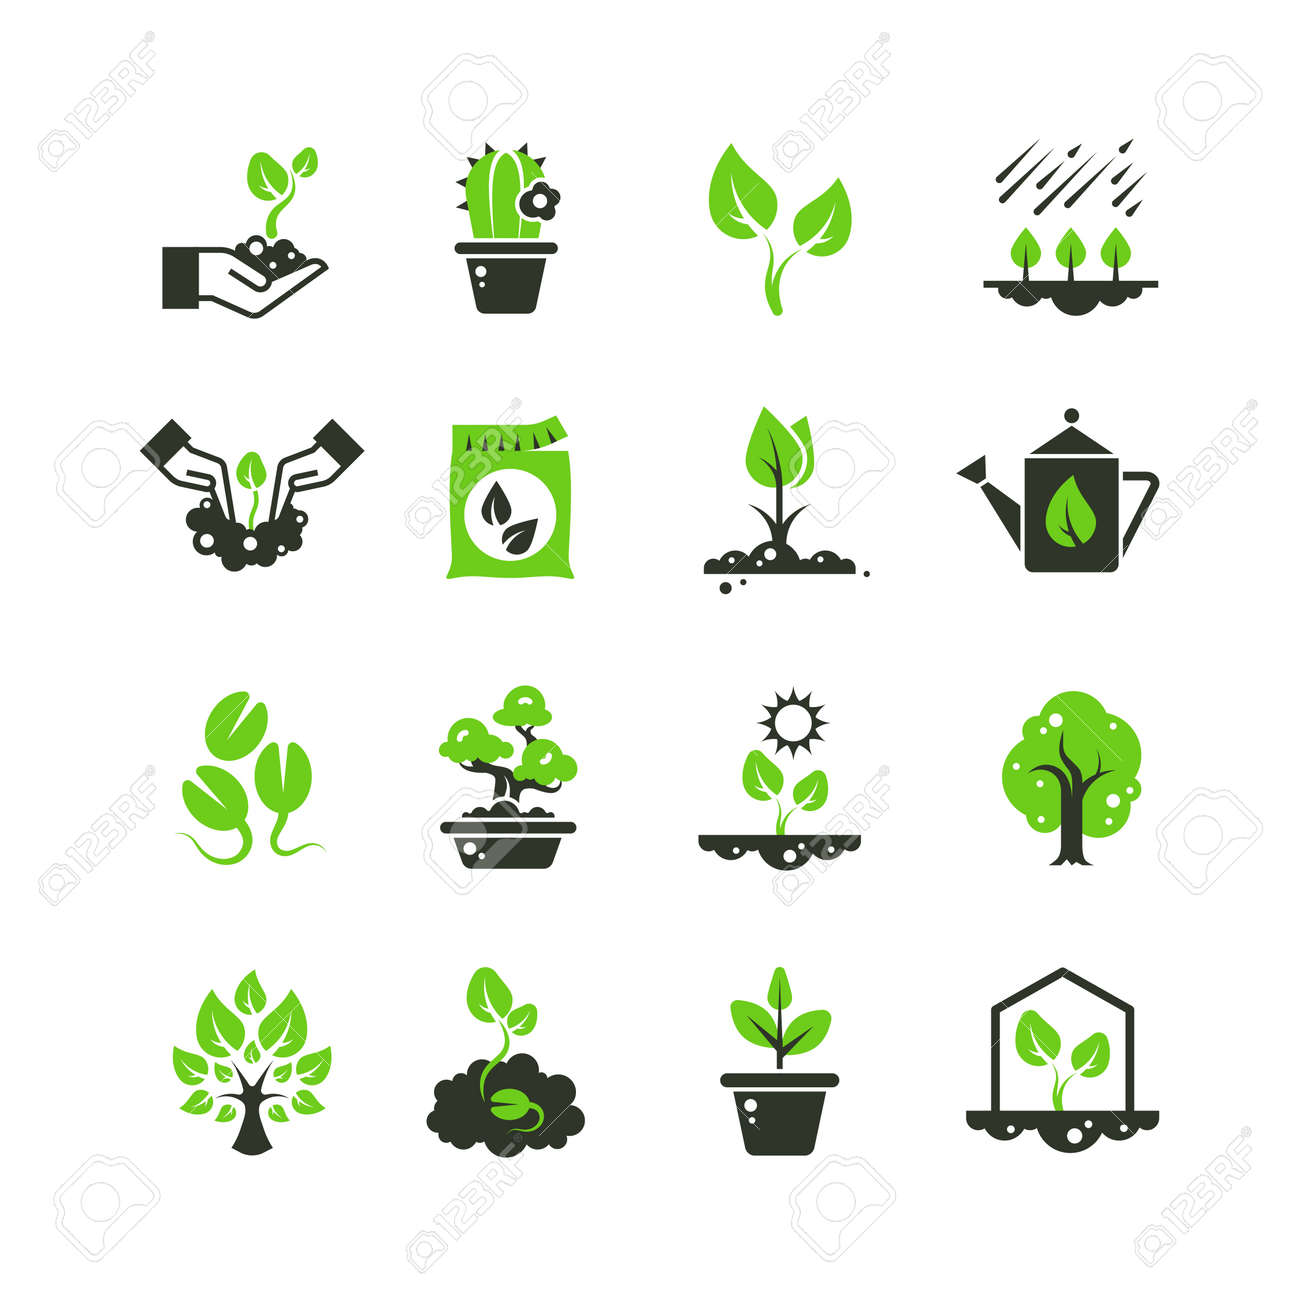 Tree sprout and plants vector icons. Seedling and hand planting pictograms. Seedling and growth tree, gardening and growing illustration - 167437275